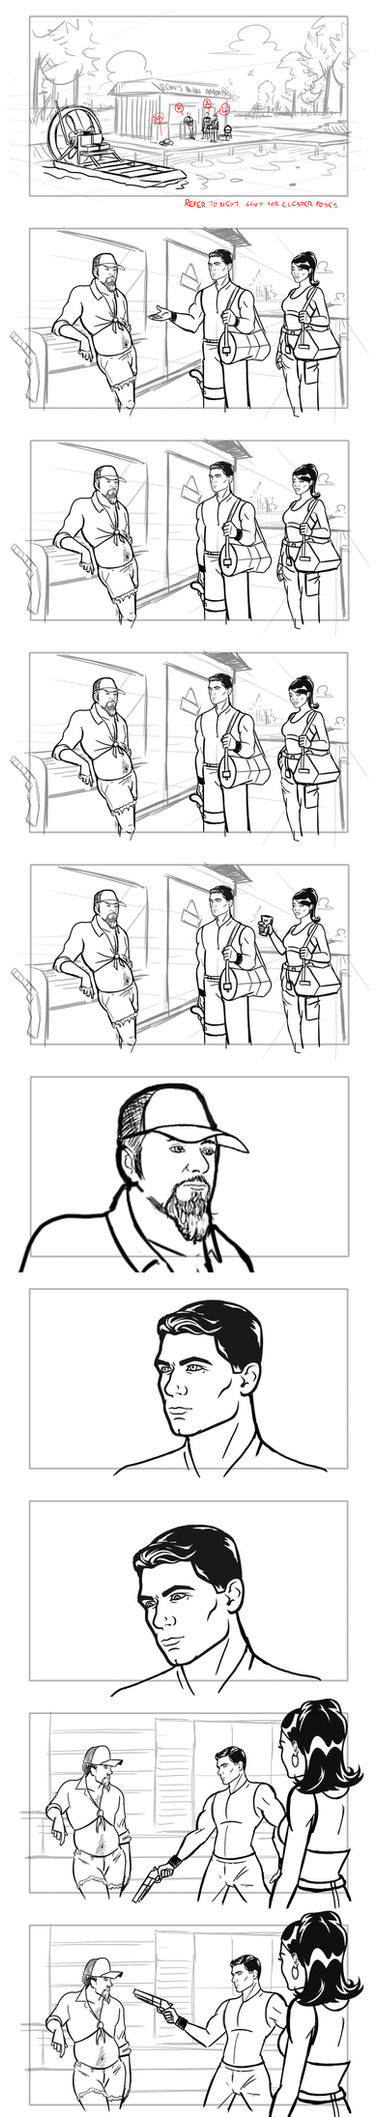 Archer 207 Storyboards Part 1 by cmbarnes